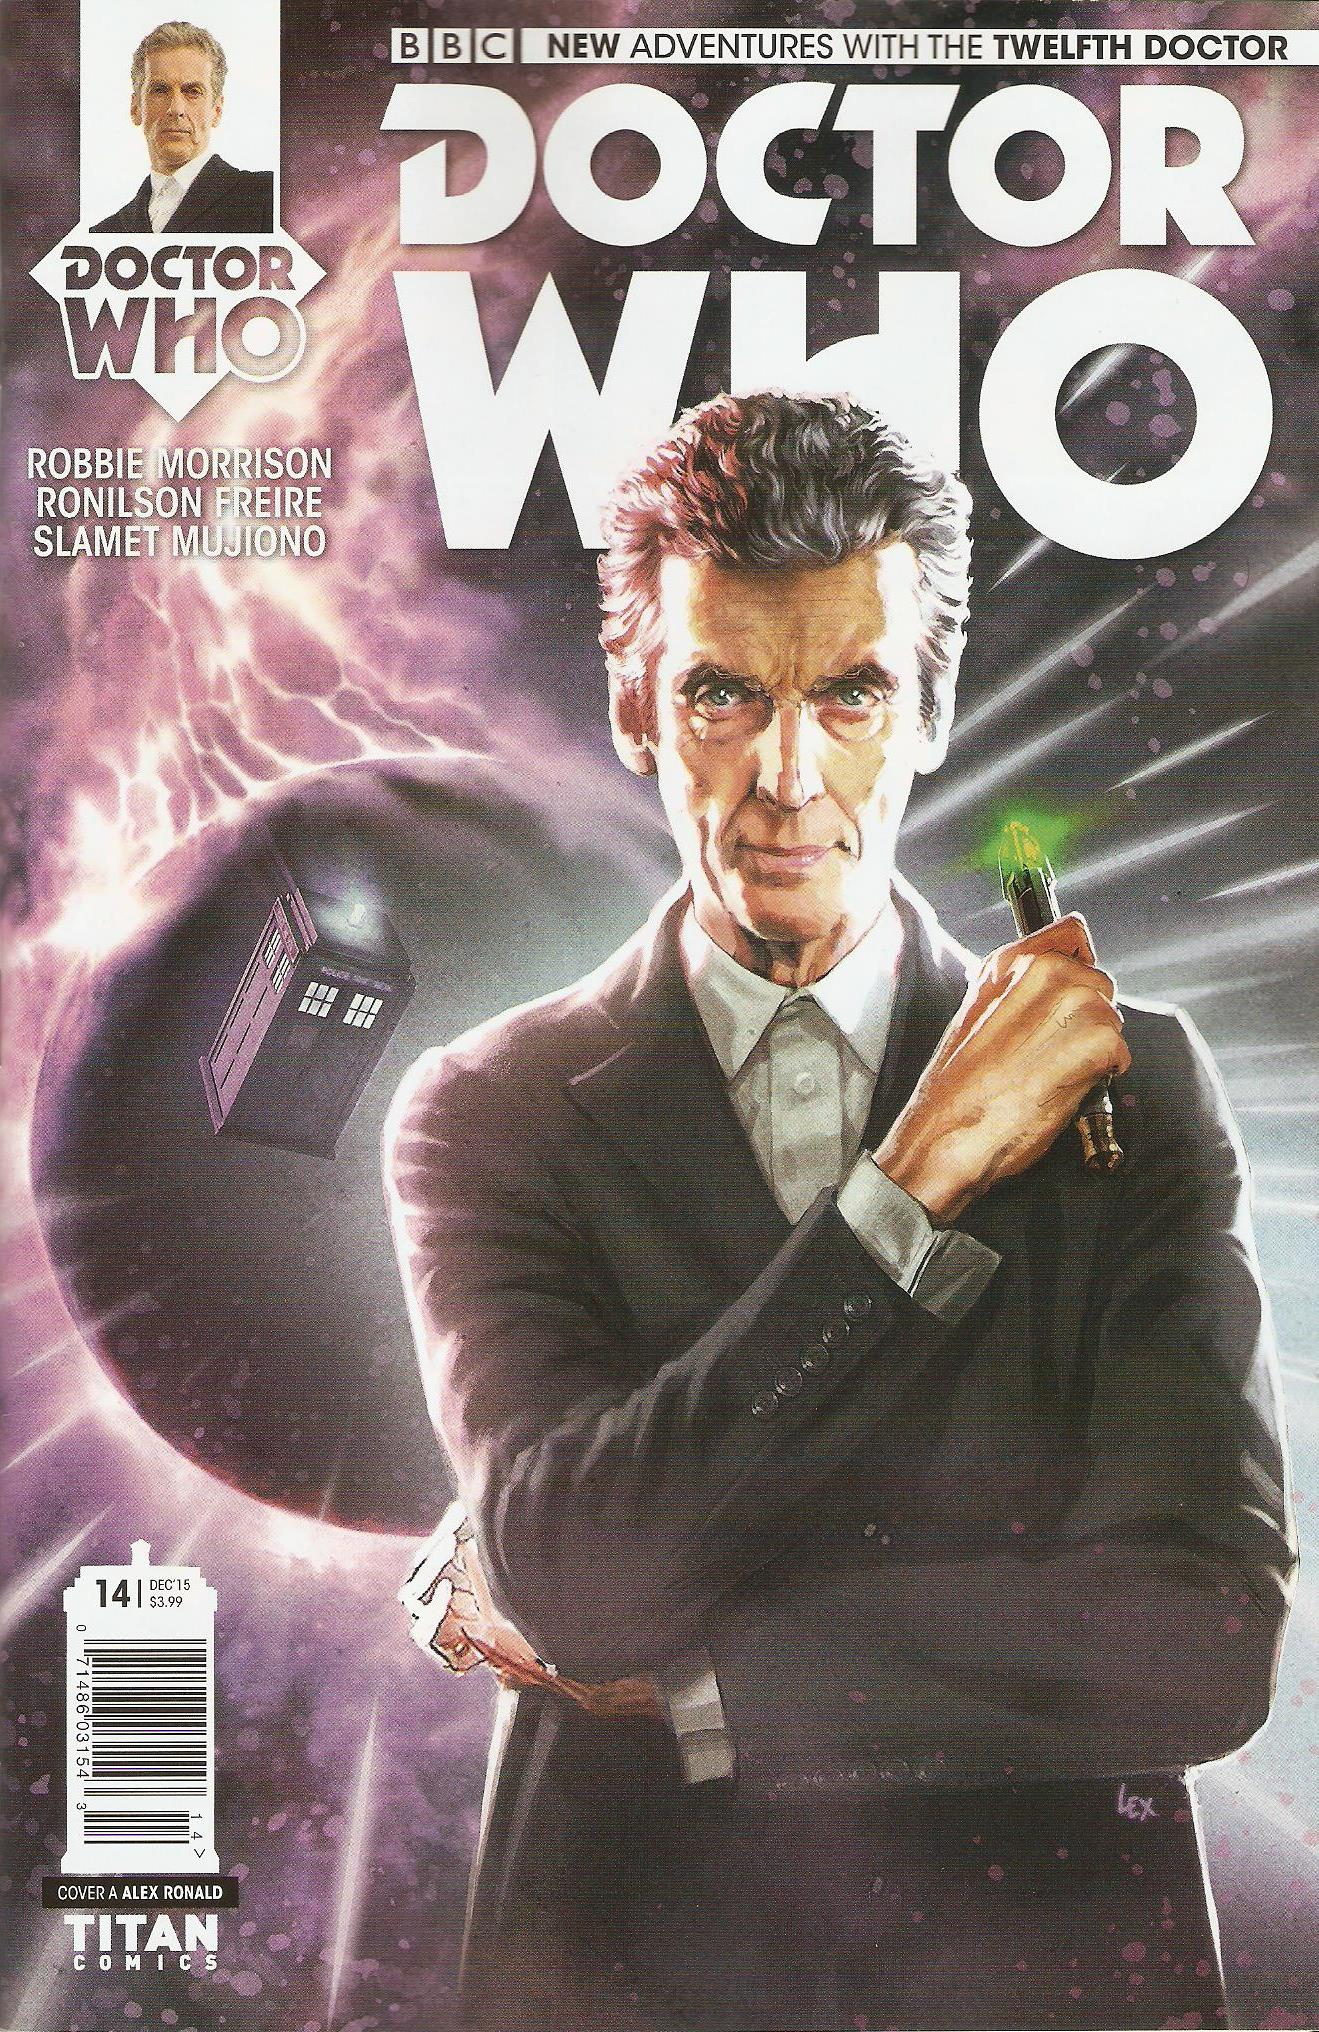 Twelfth doctor issue 14a